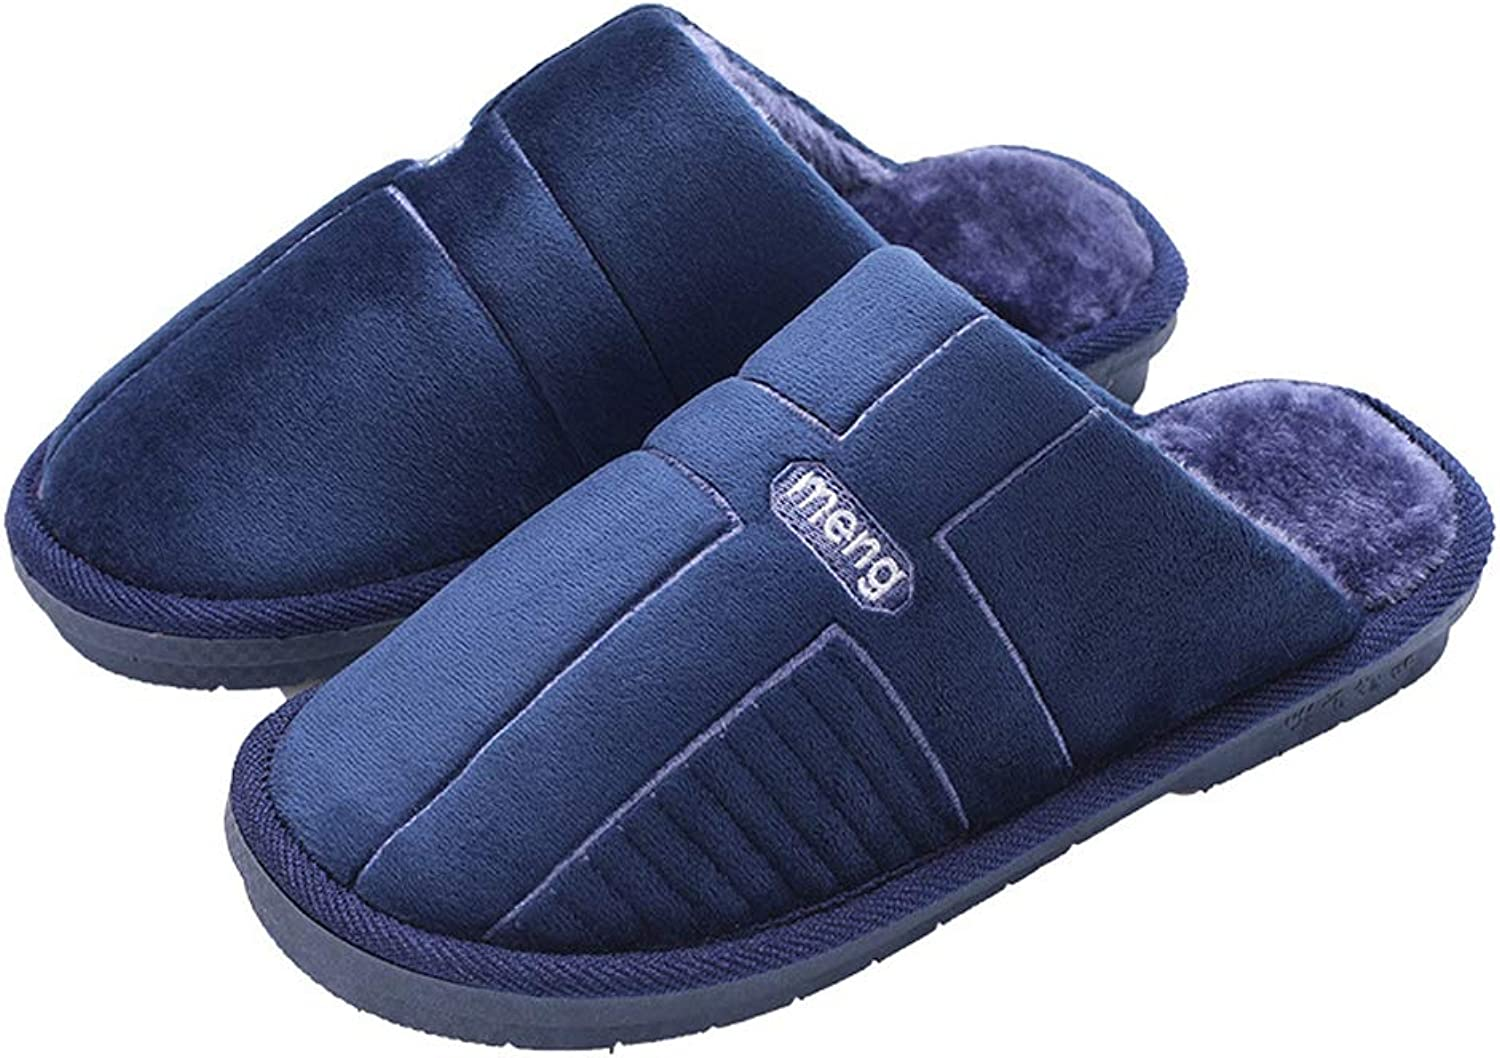 WGFGXQ Men and Women Cross Cotton Slippers, Autumn and Winter Home Non-Slip Warm Cotton shoes